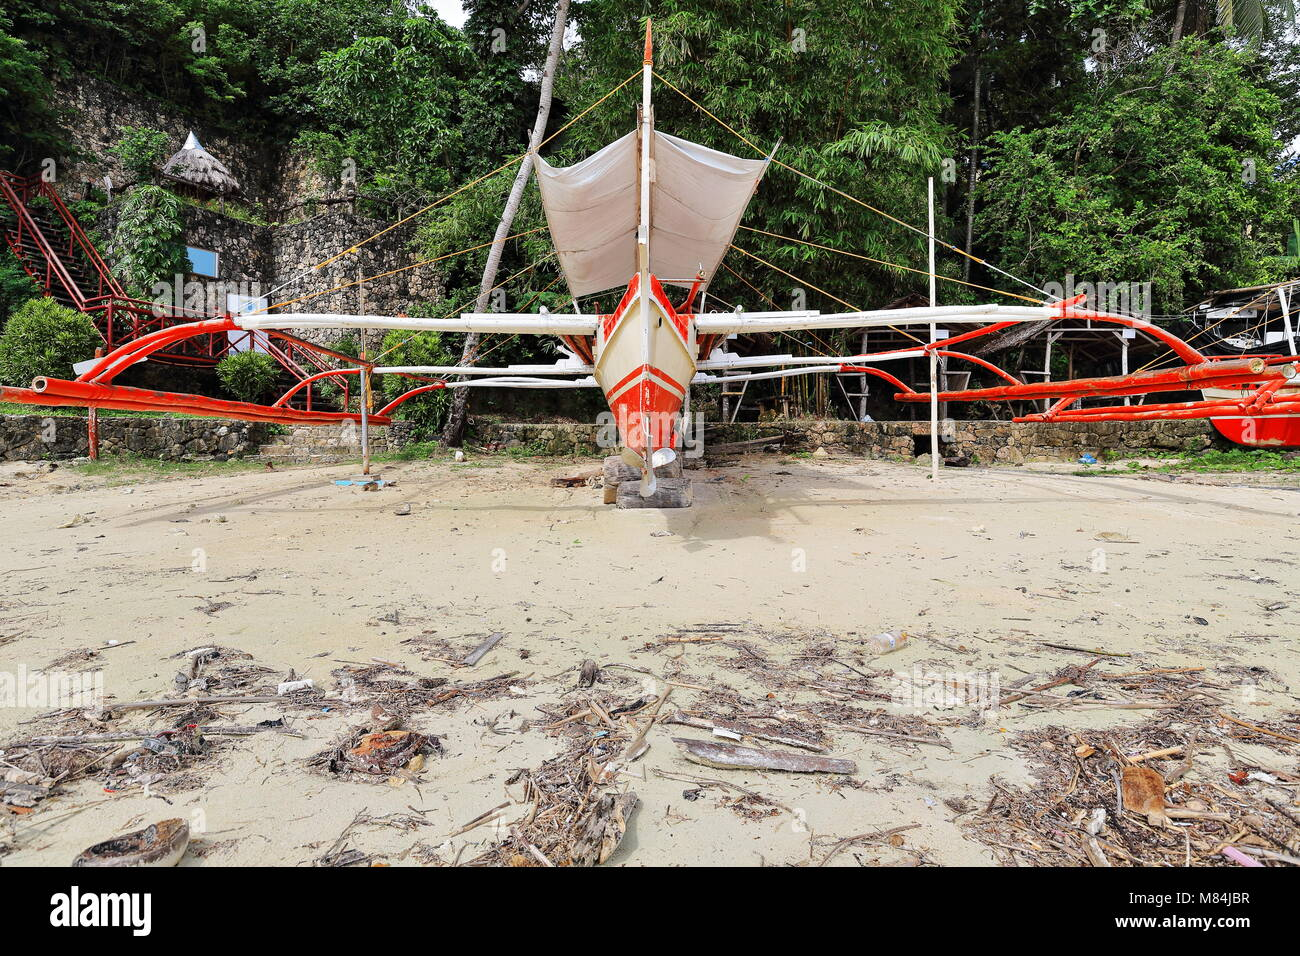 Balangay or bangka double-outrigger boat for touristic use of the nearby diving and snorkeling resorts beached on - Stock Image